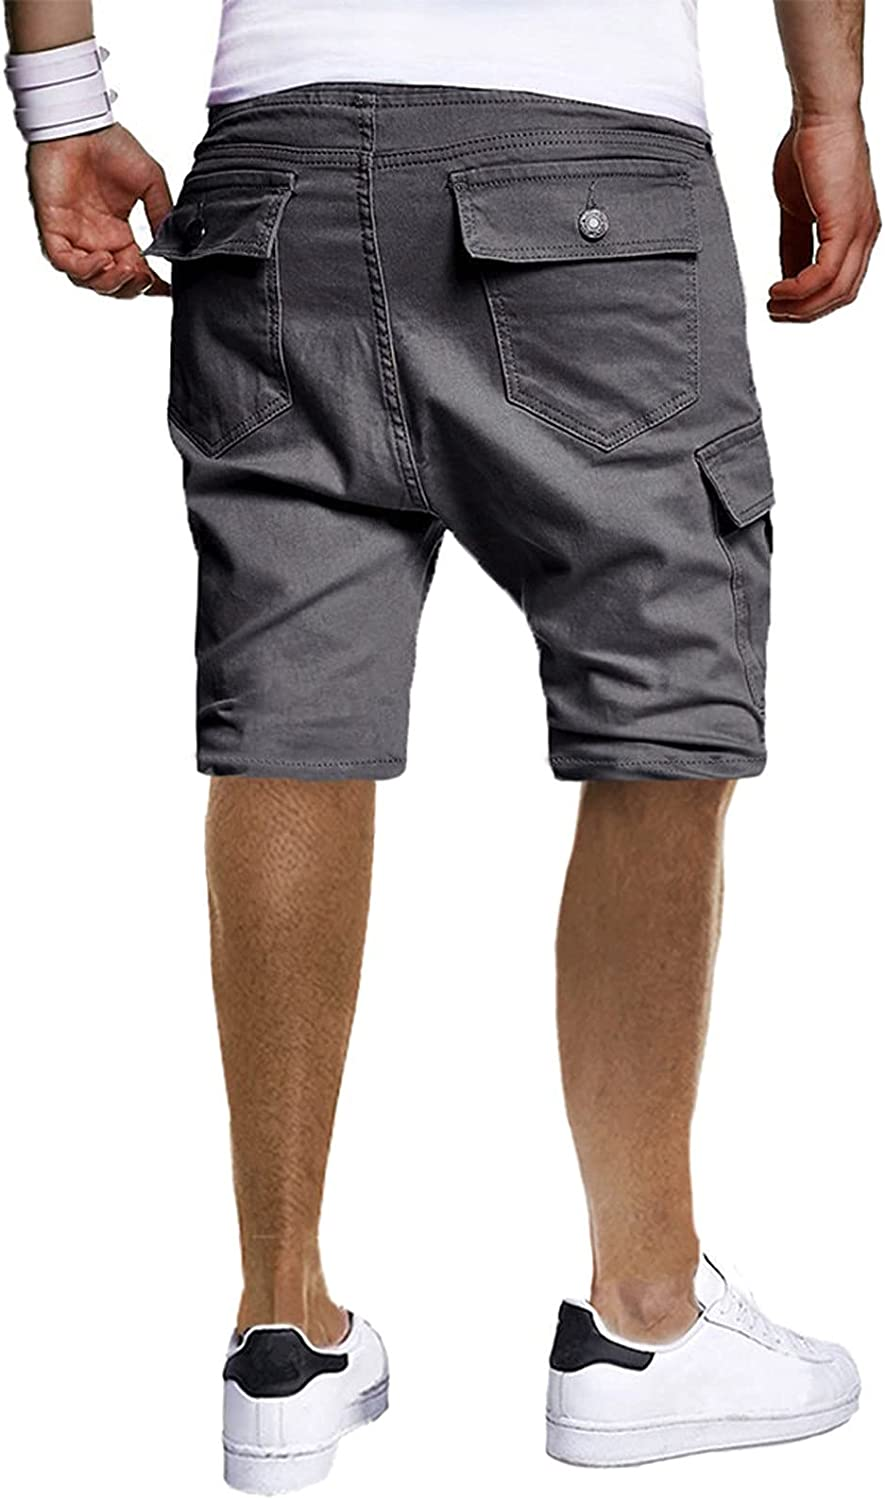 ZCAITIANYA Men's Shorts Cargo Pants Casual Summer Solid Color Outdoor Breathable Drawstring Sports Pants with Pockets